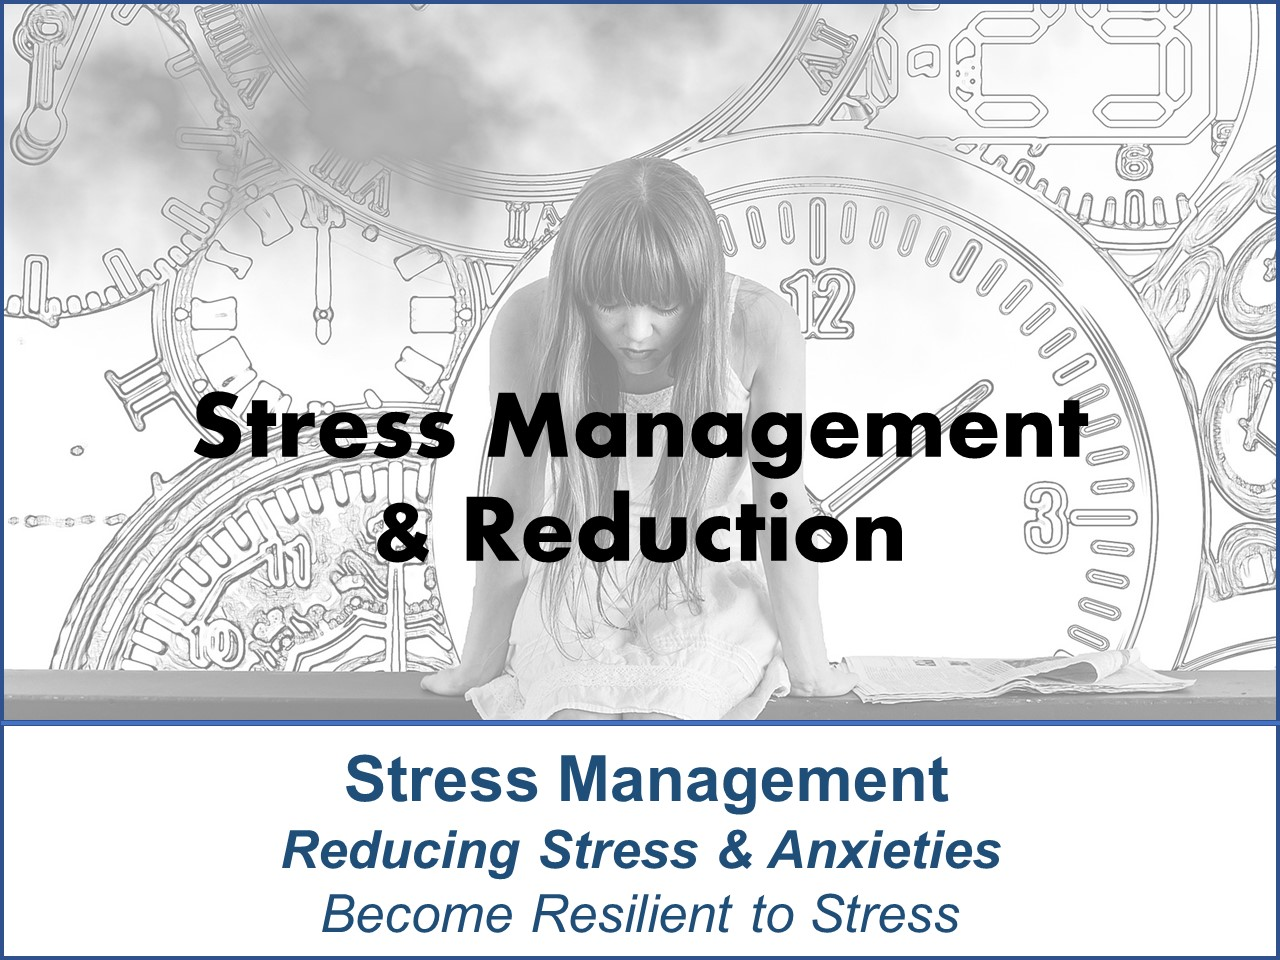 Special ~ Stress Management & Reduction